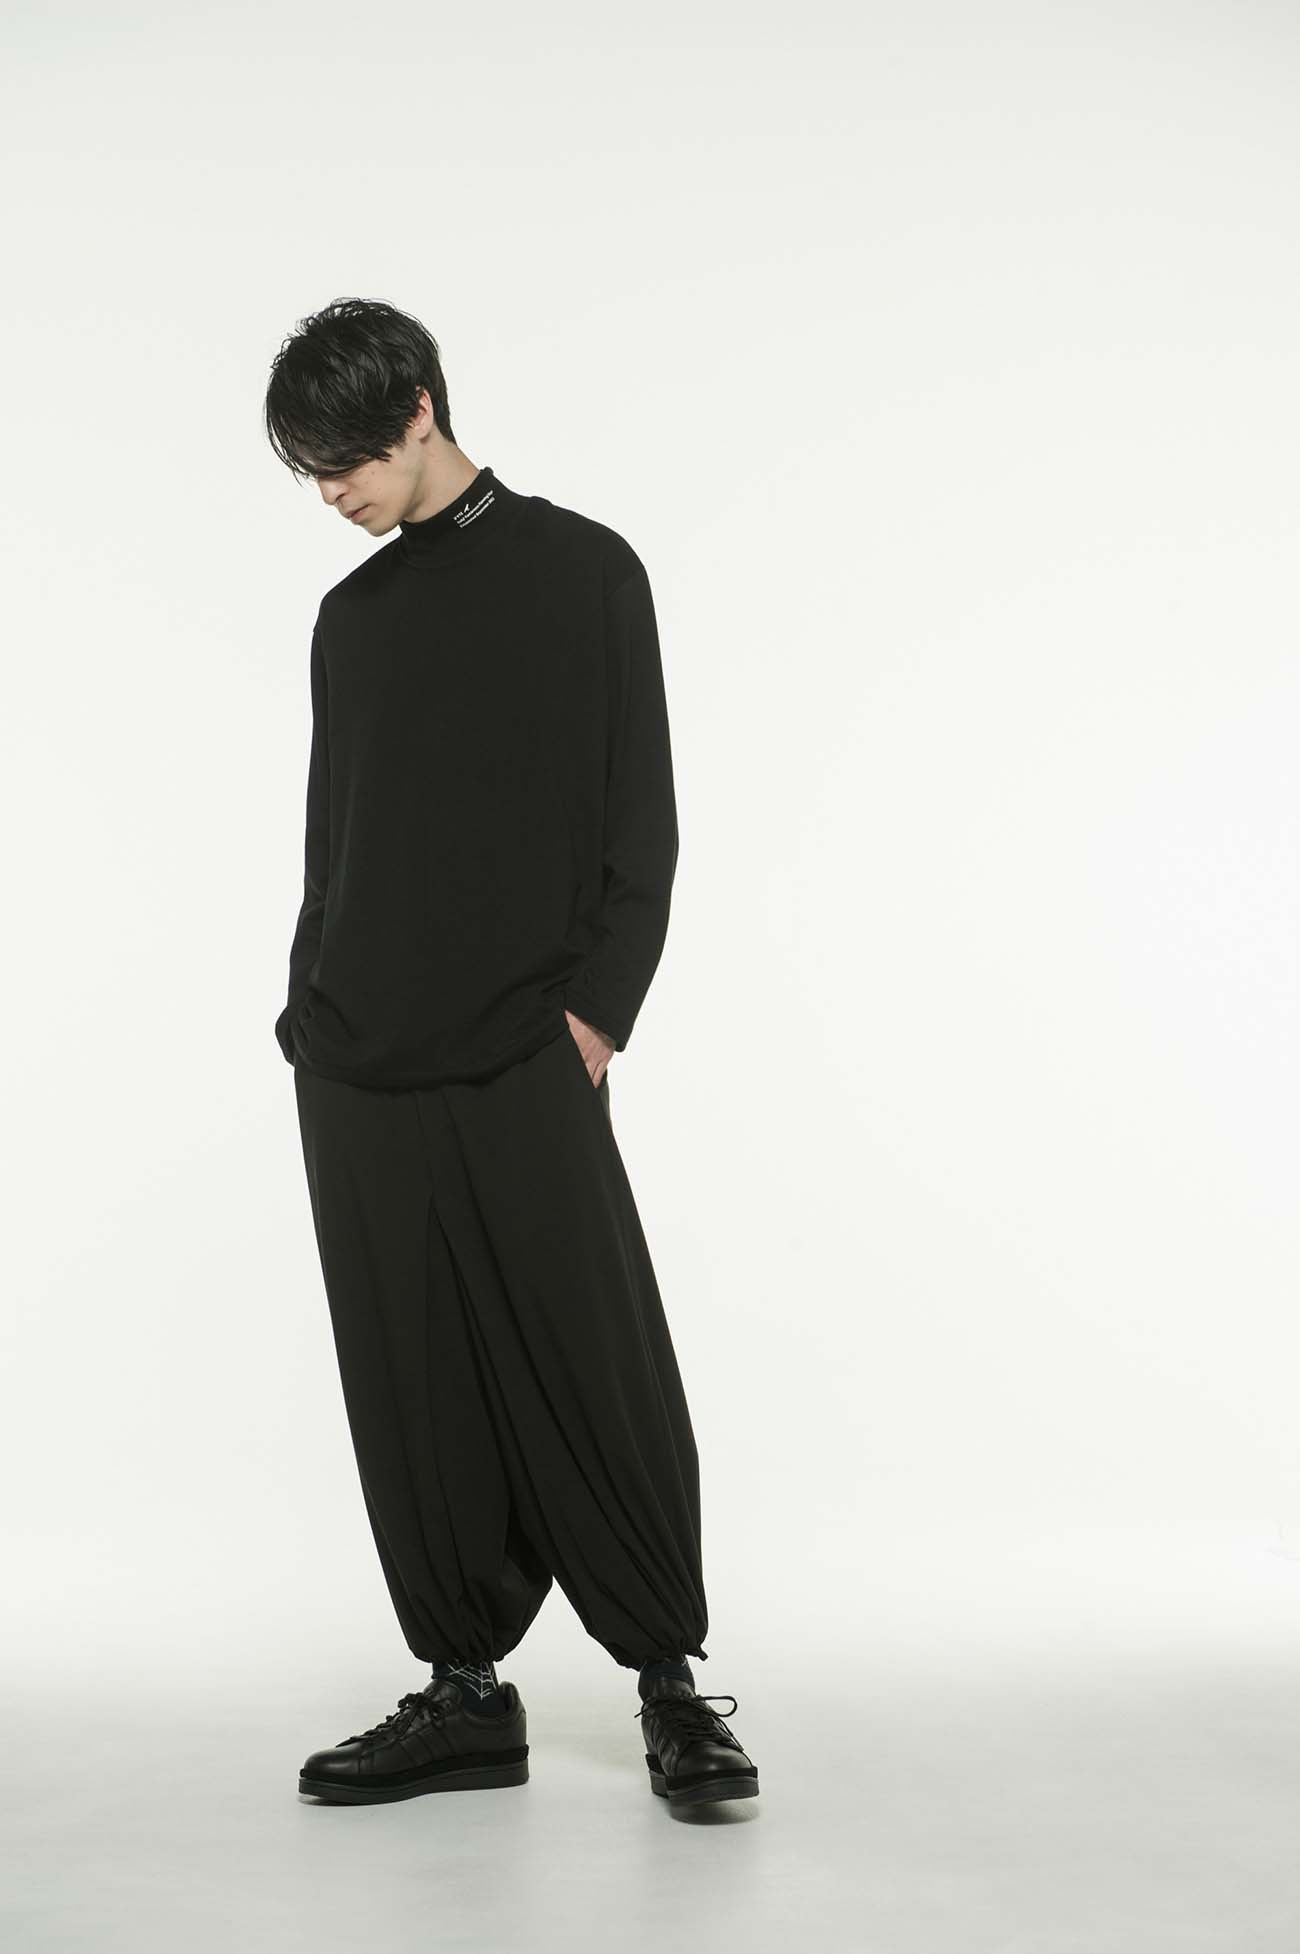 20/CottonJersey S'YTE Crow High Neck T-Shirt